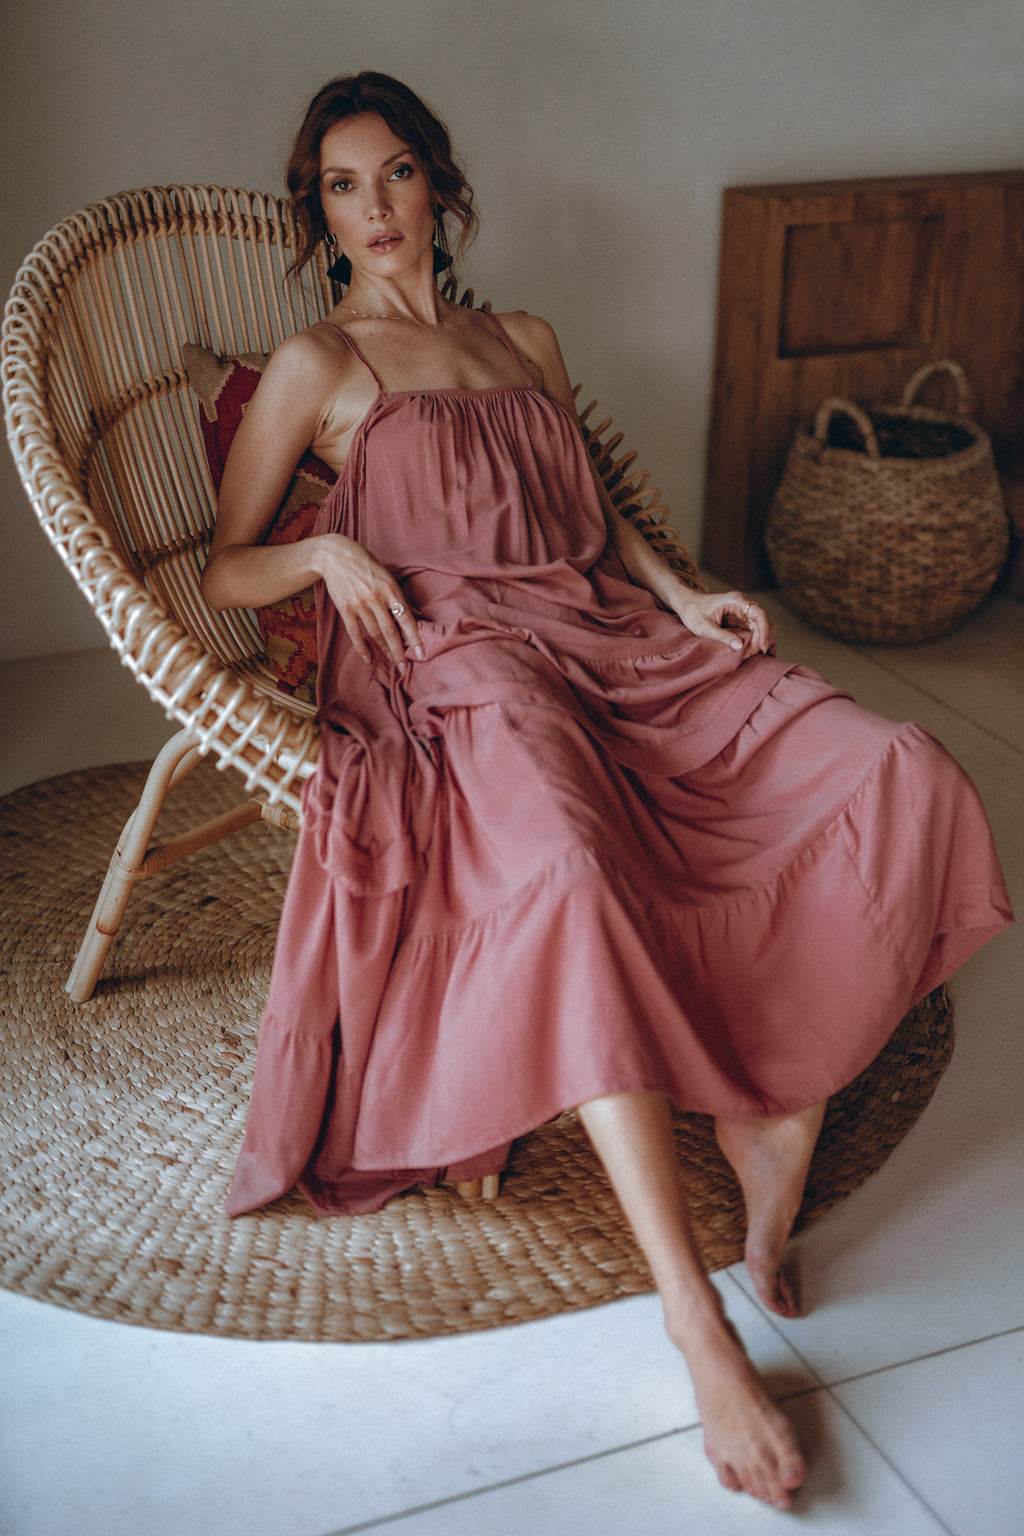 model in a pink maxi dress sitting in a chair